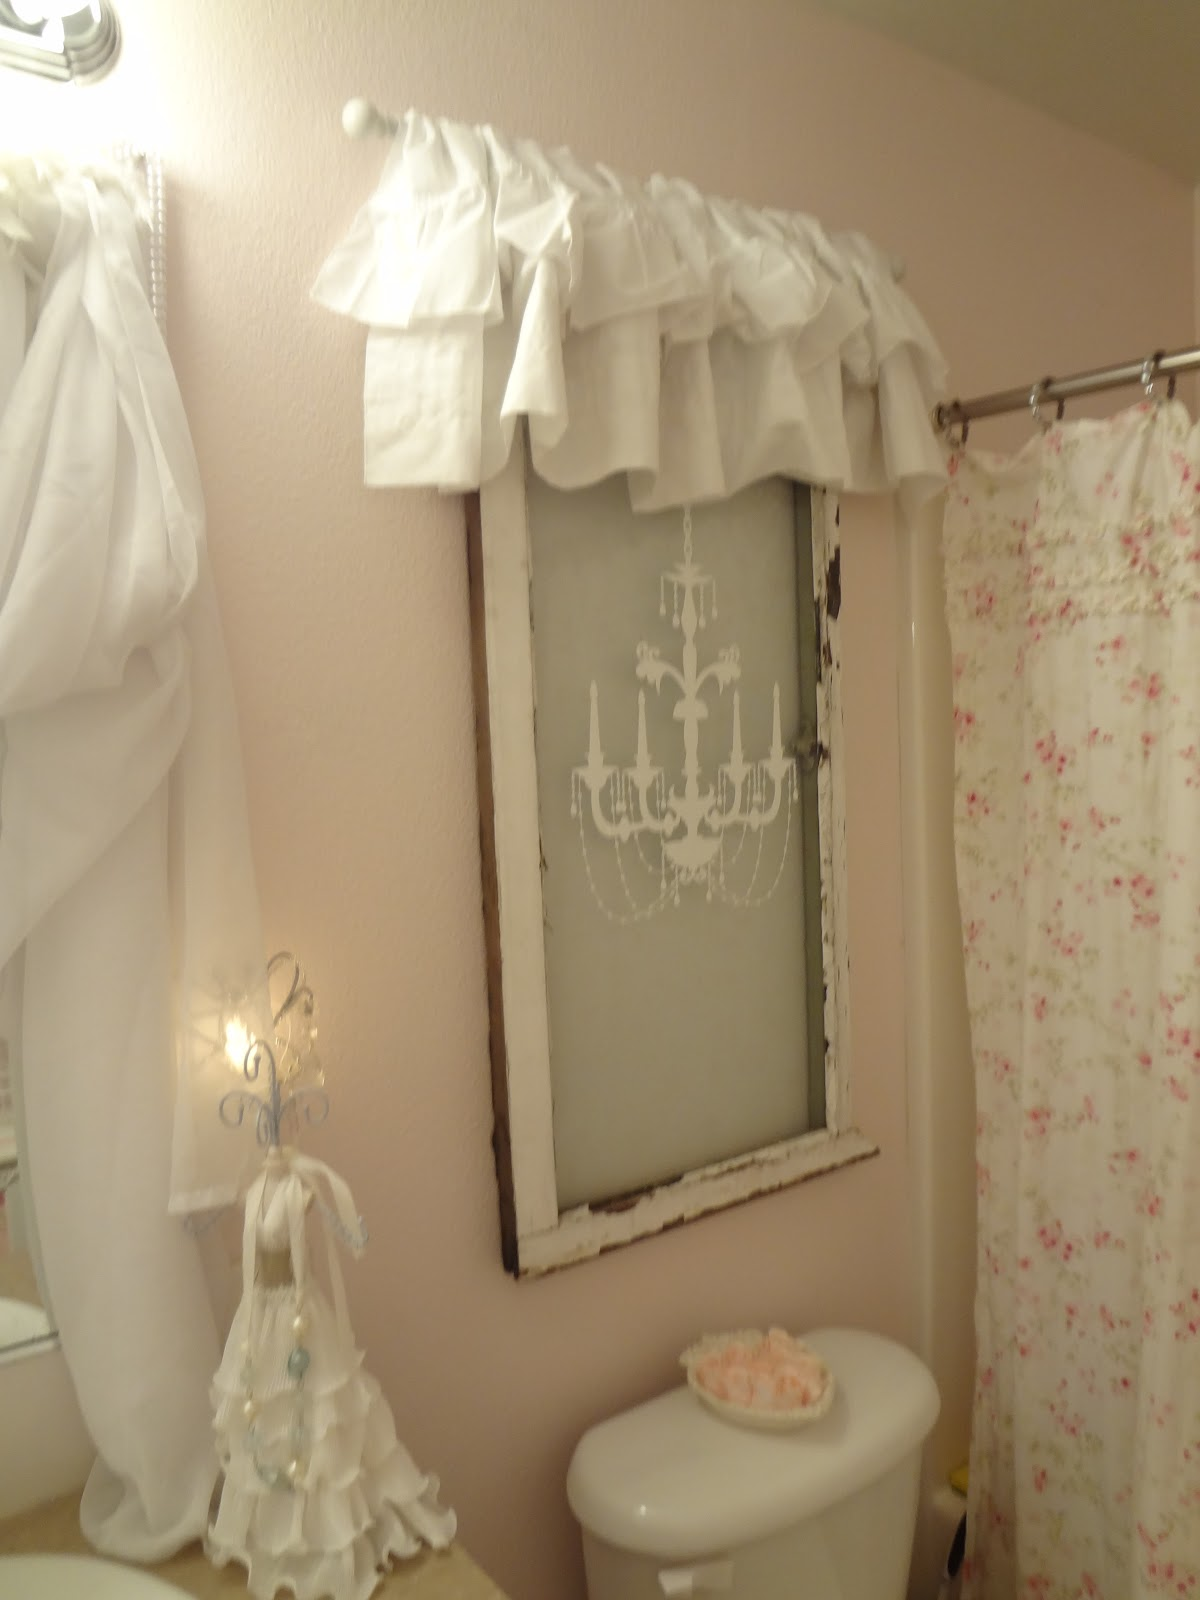 Lace bathroom window curtains - I Always Wished This Bathroom Had A Window In This Exact Place I Feel This Gives It The Feel Of A Window The Nice Part Is Though No One Can See In